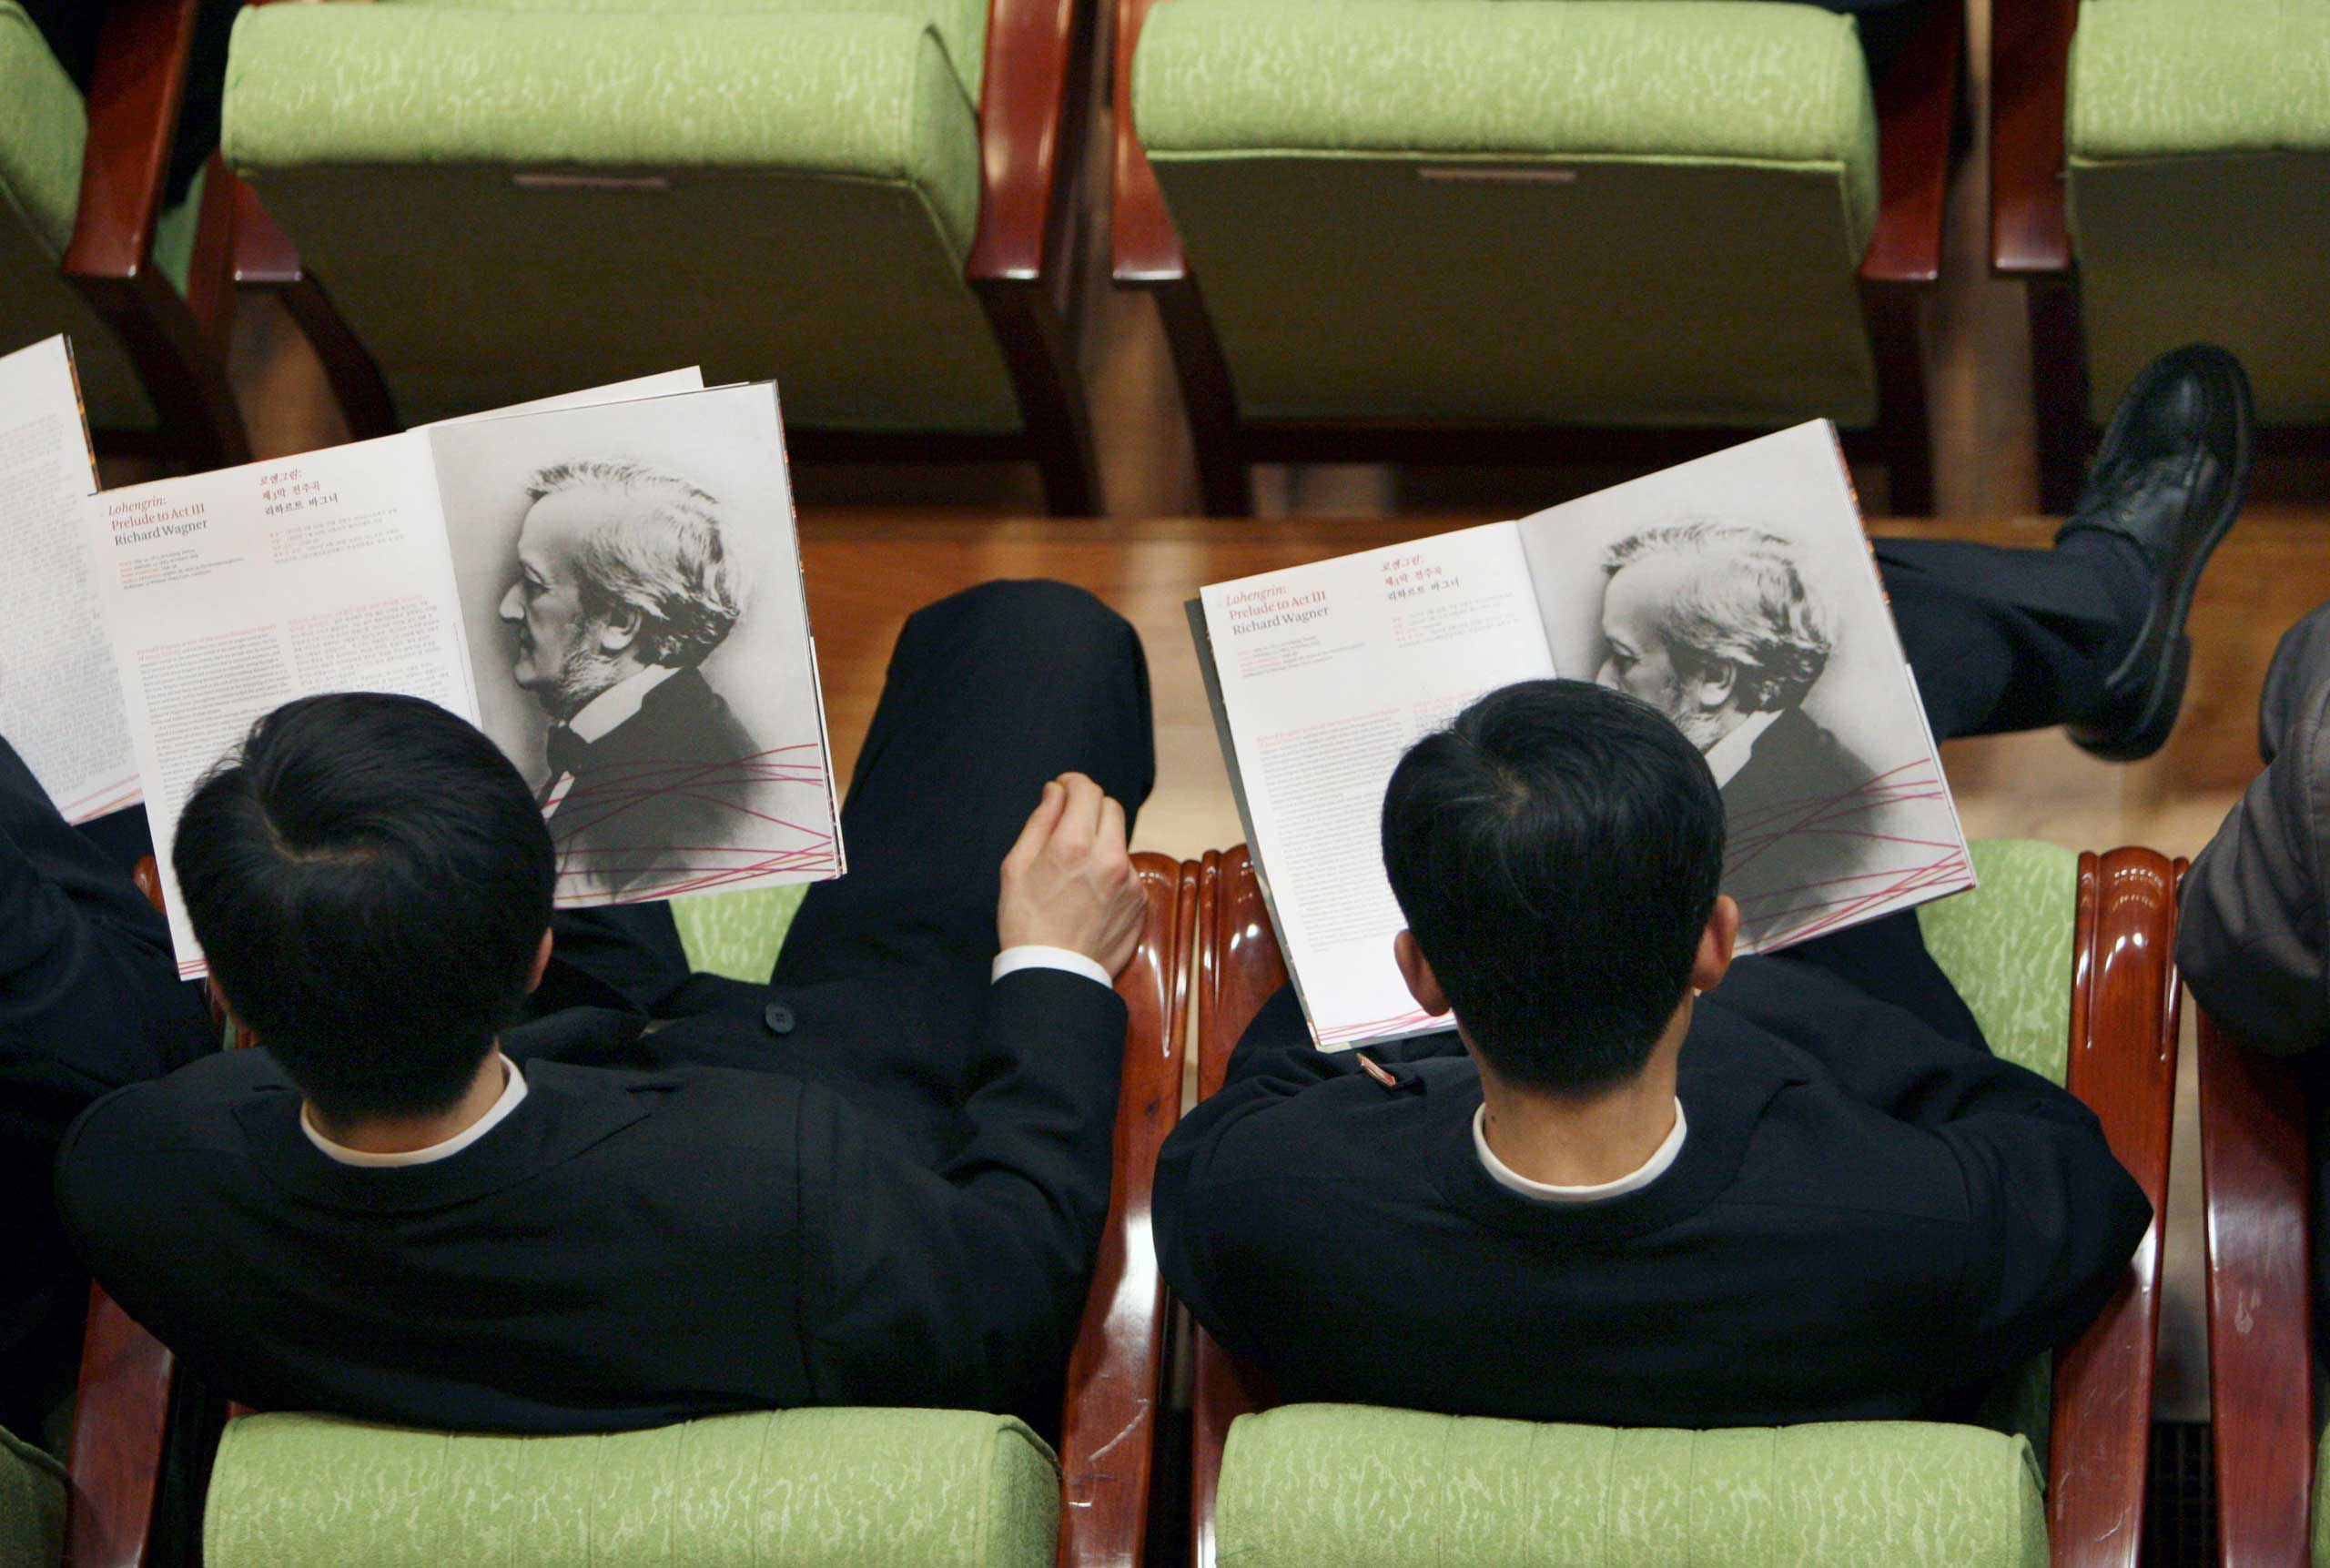 Feb. 26, 2008. North Koreans look through the performance program before the start of a concert by the New York Philharmonic in Pyongyang.